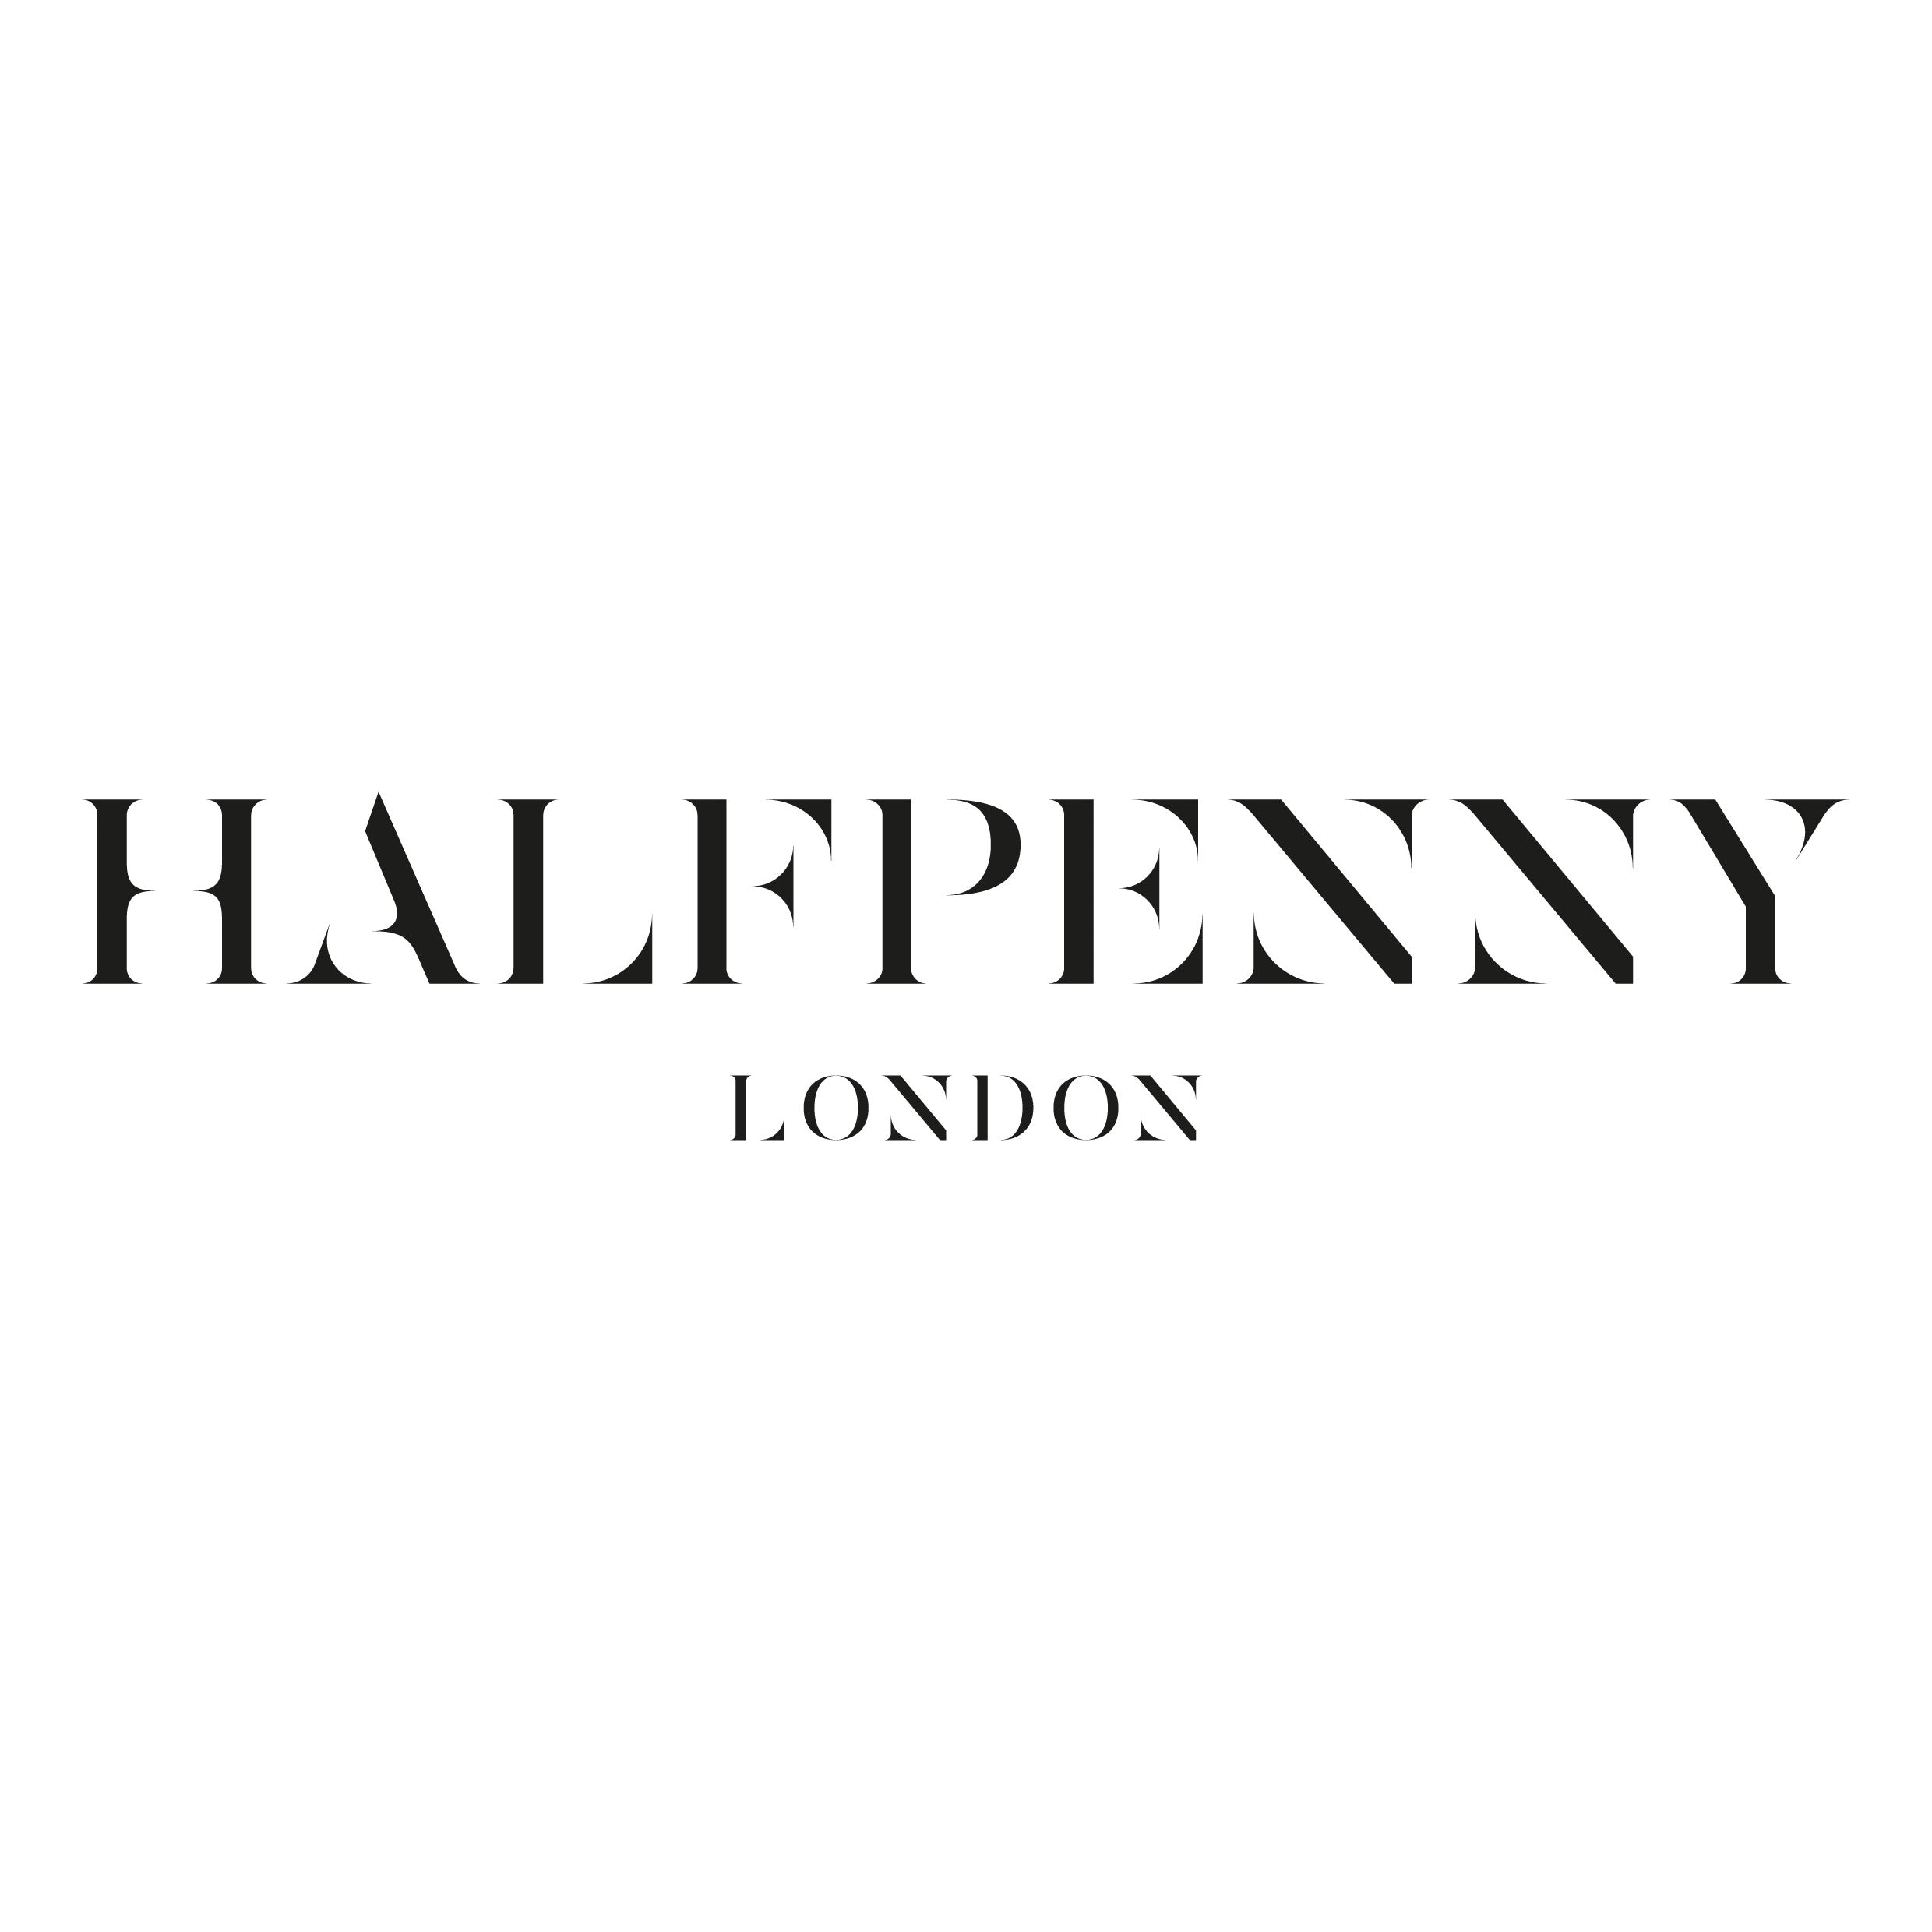 Halfpenny London company logo